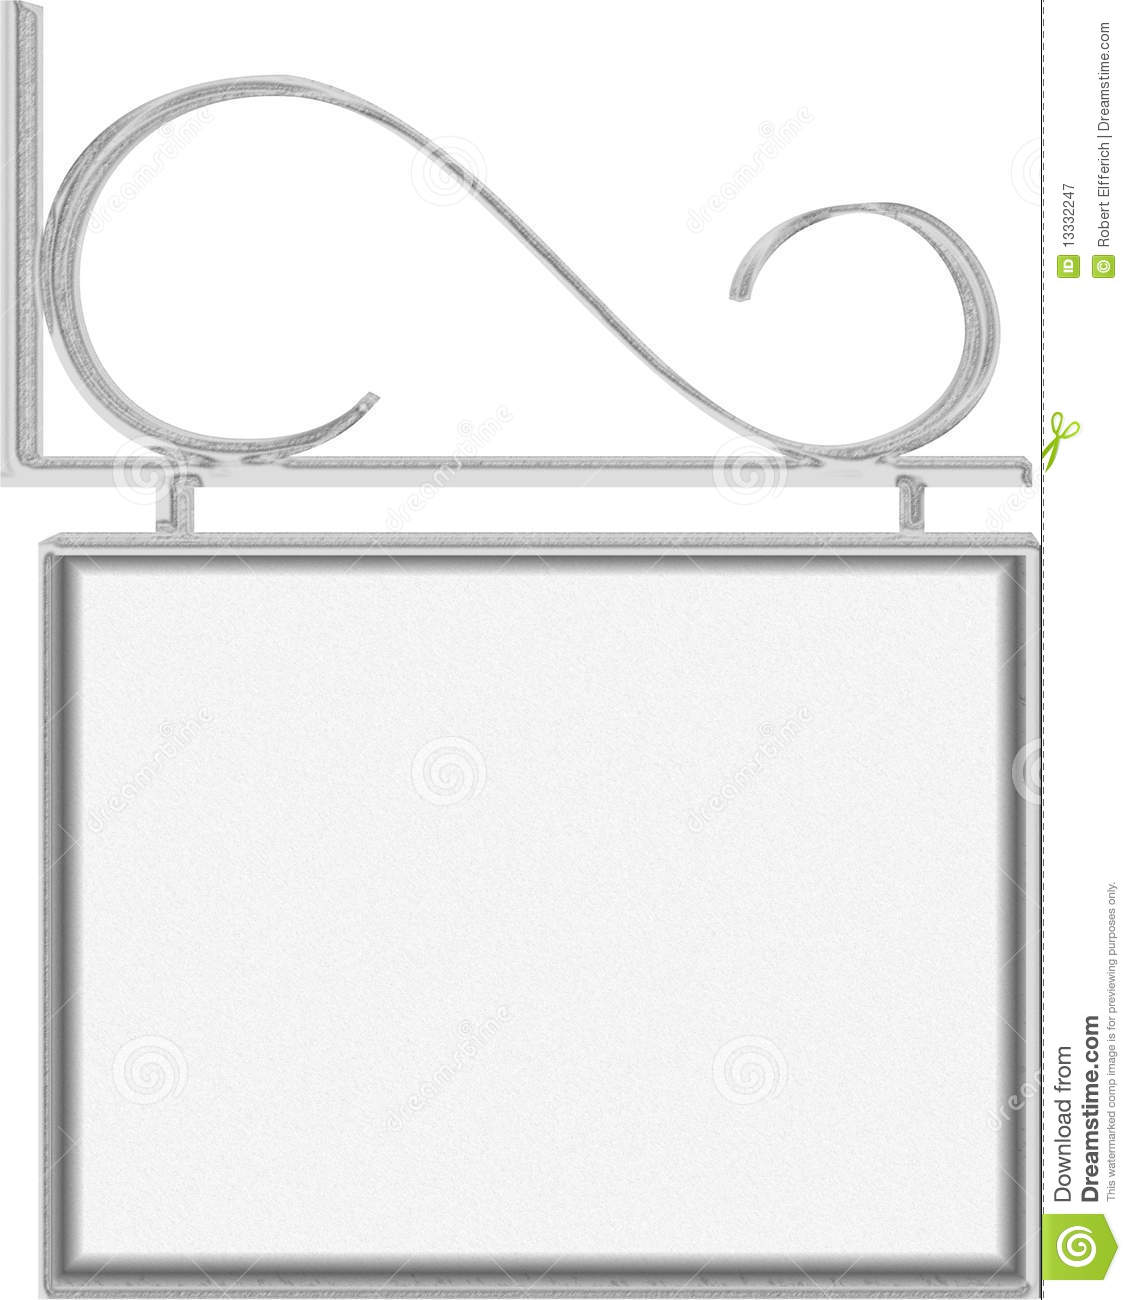 Hanging Sign With Frame For Text Stock Illustration - Illustration ...